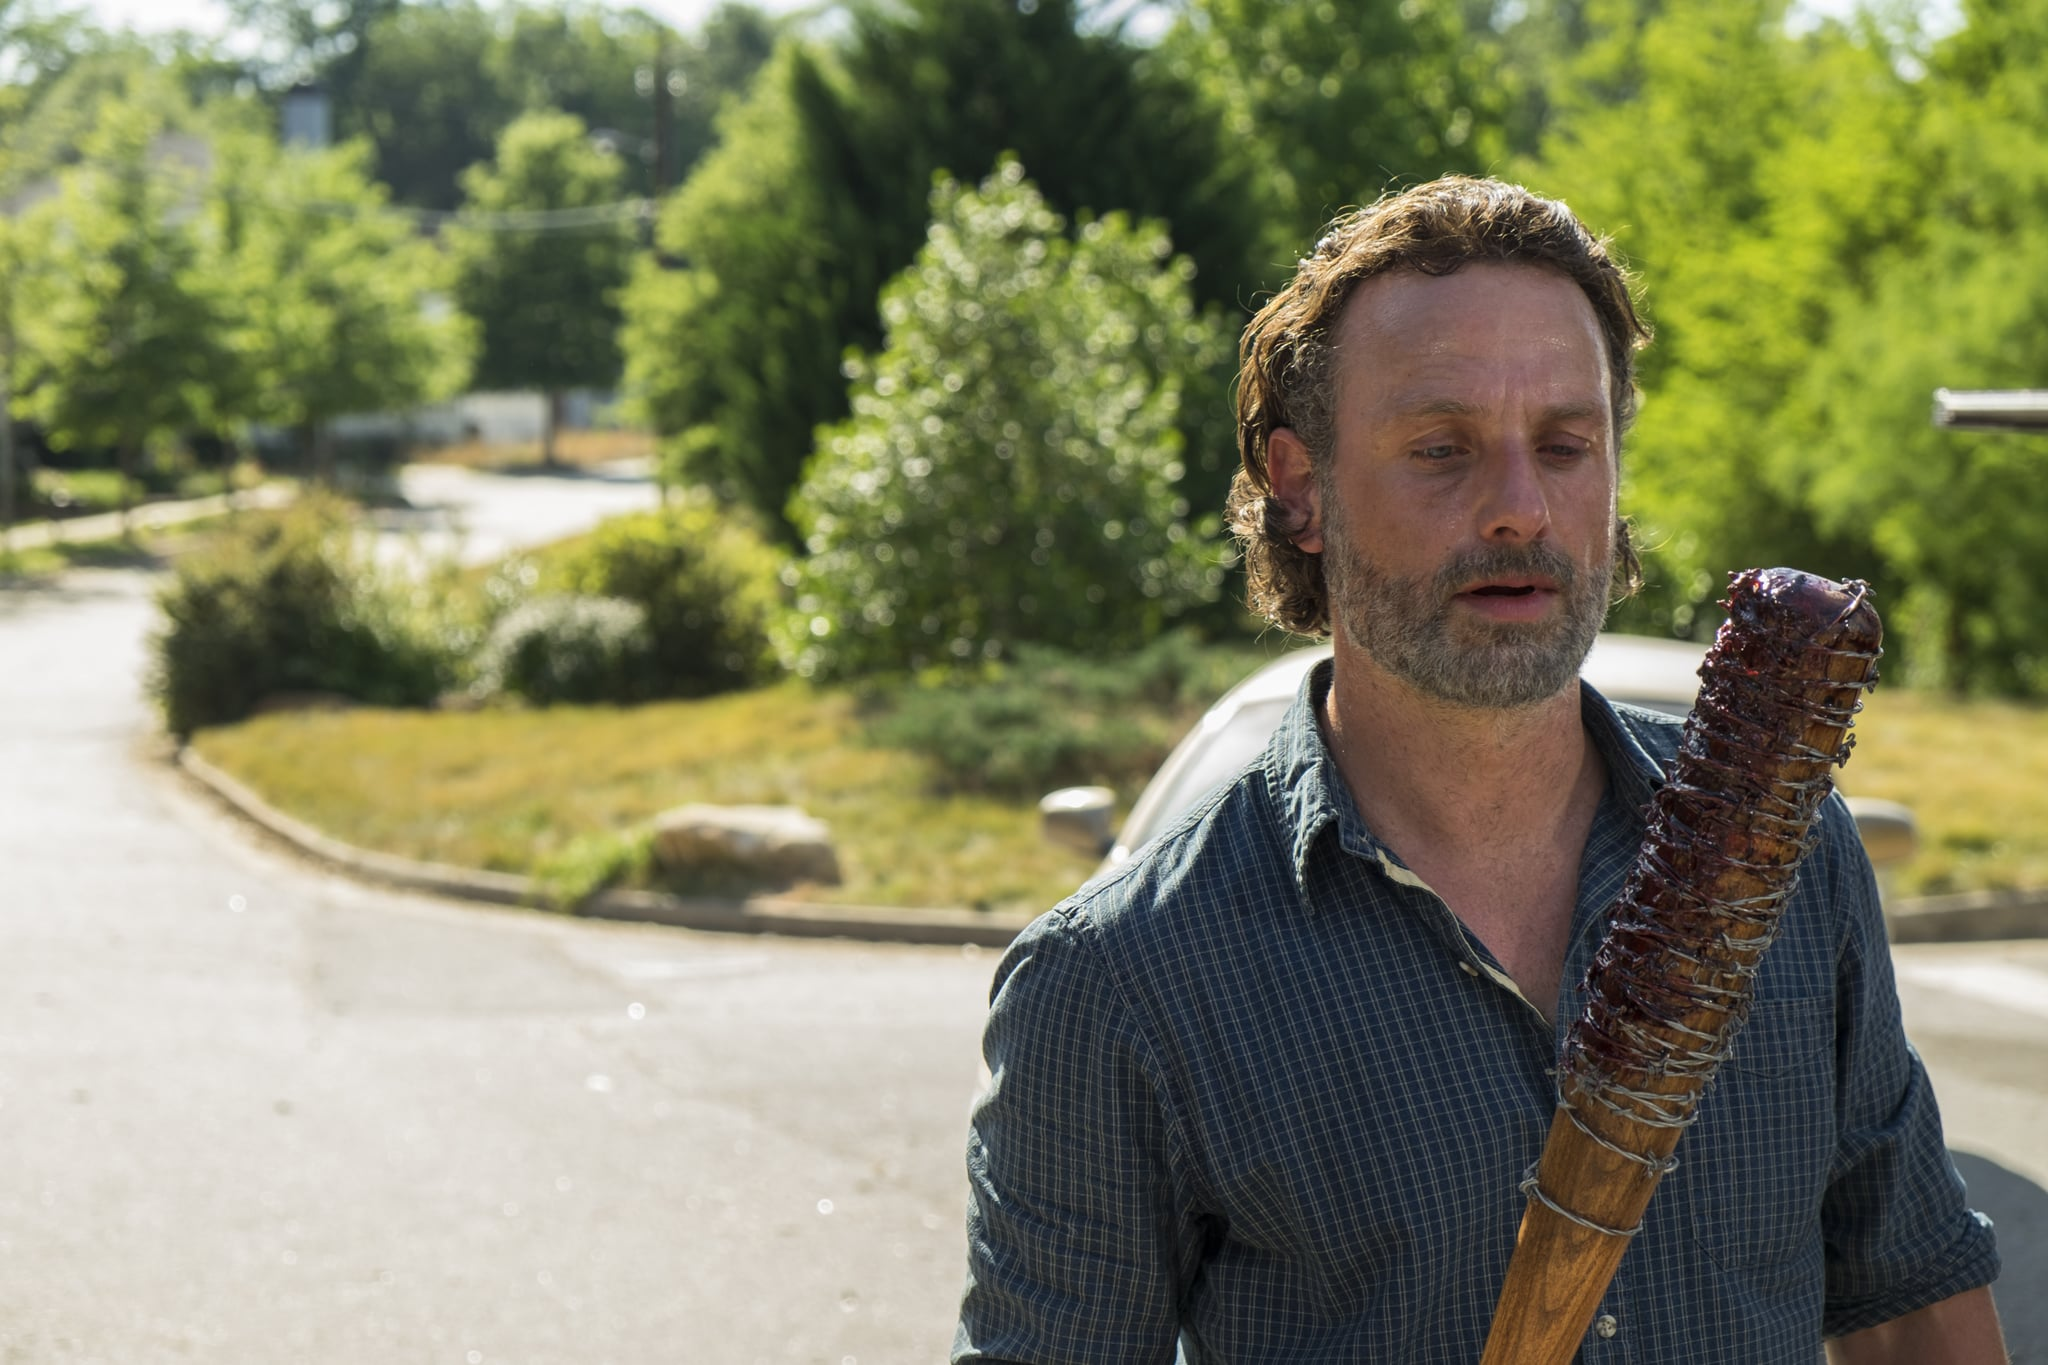 The Walking Dead: What Could Happen With Rick Now That He's Under Negan's Thumb